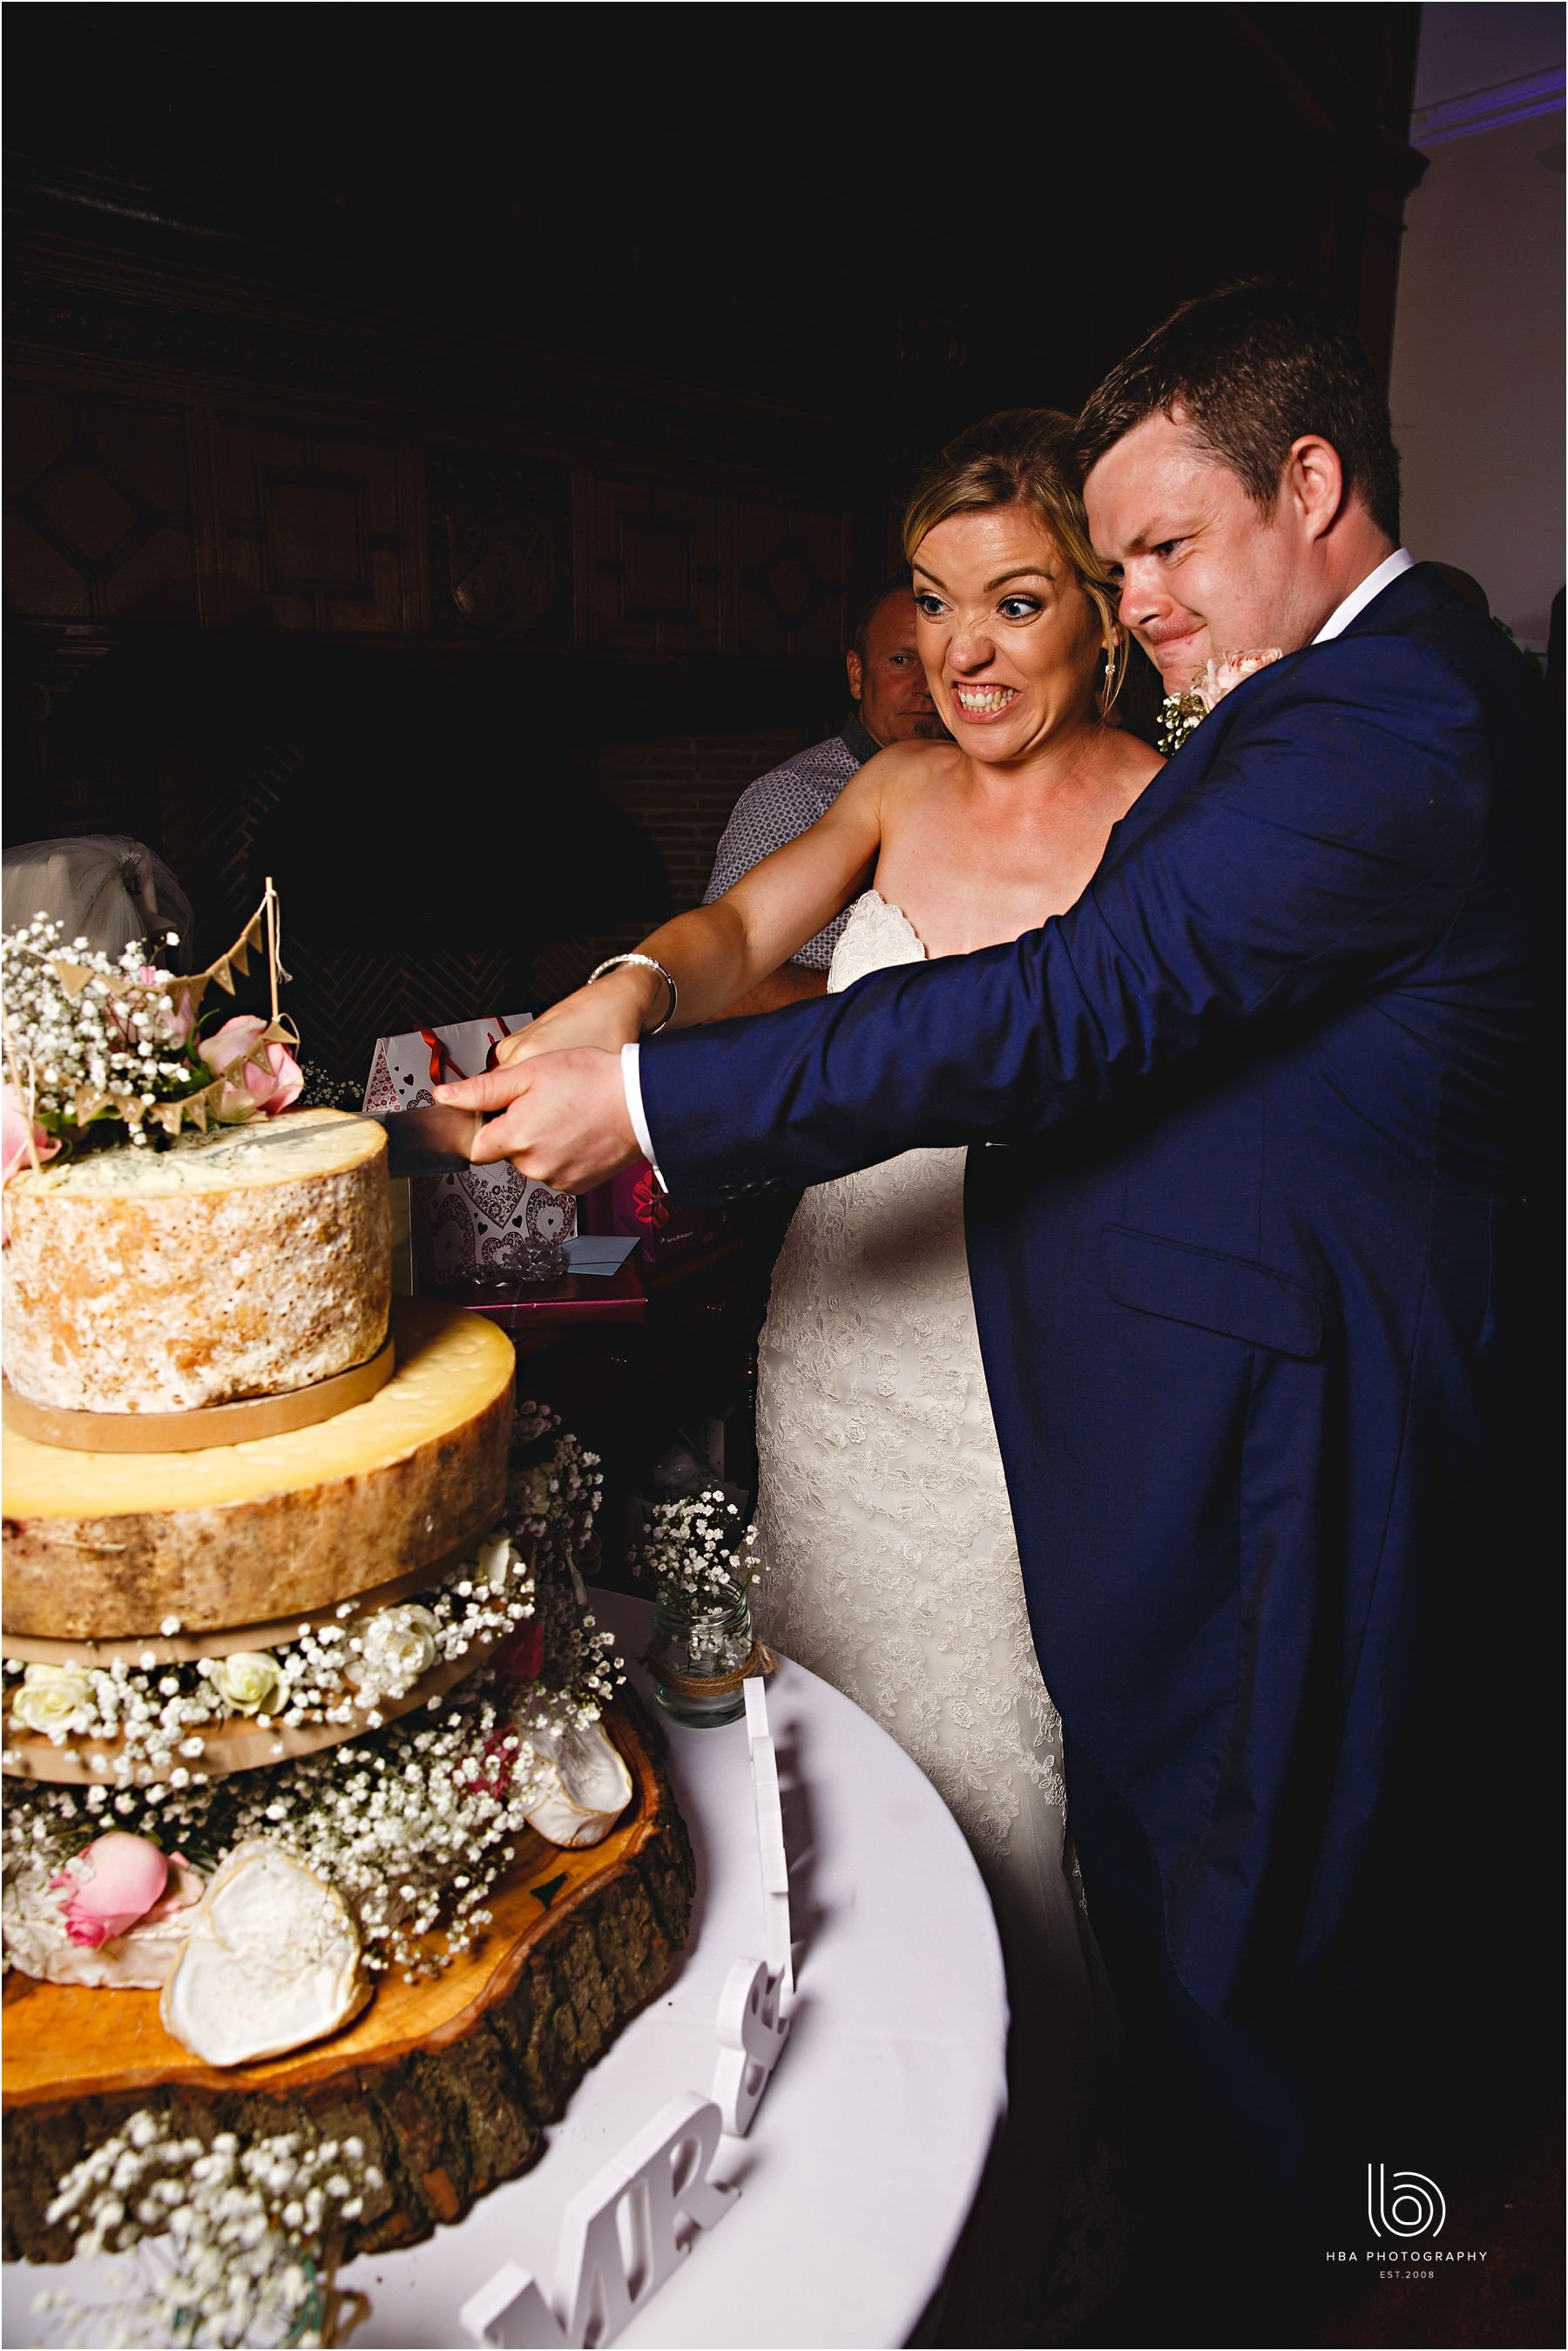 the bride & groom cutting their cheese cake